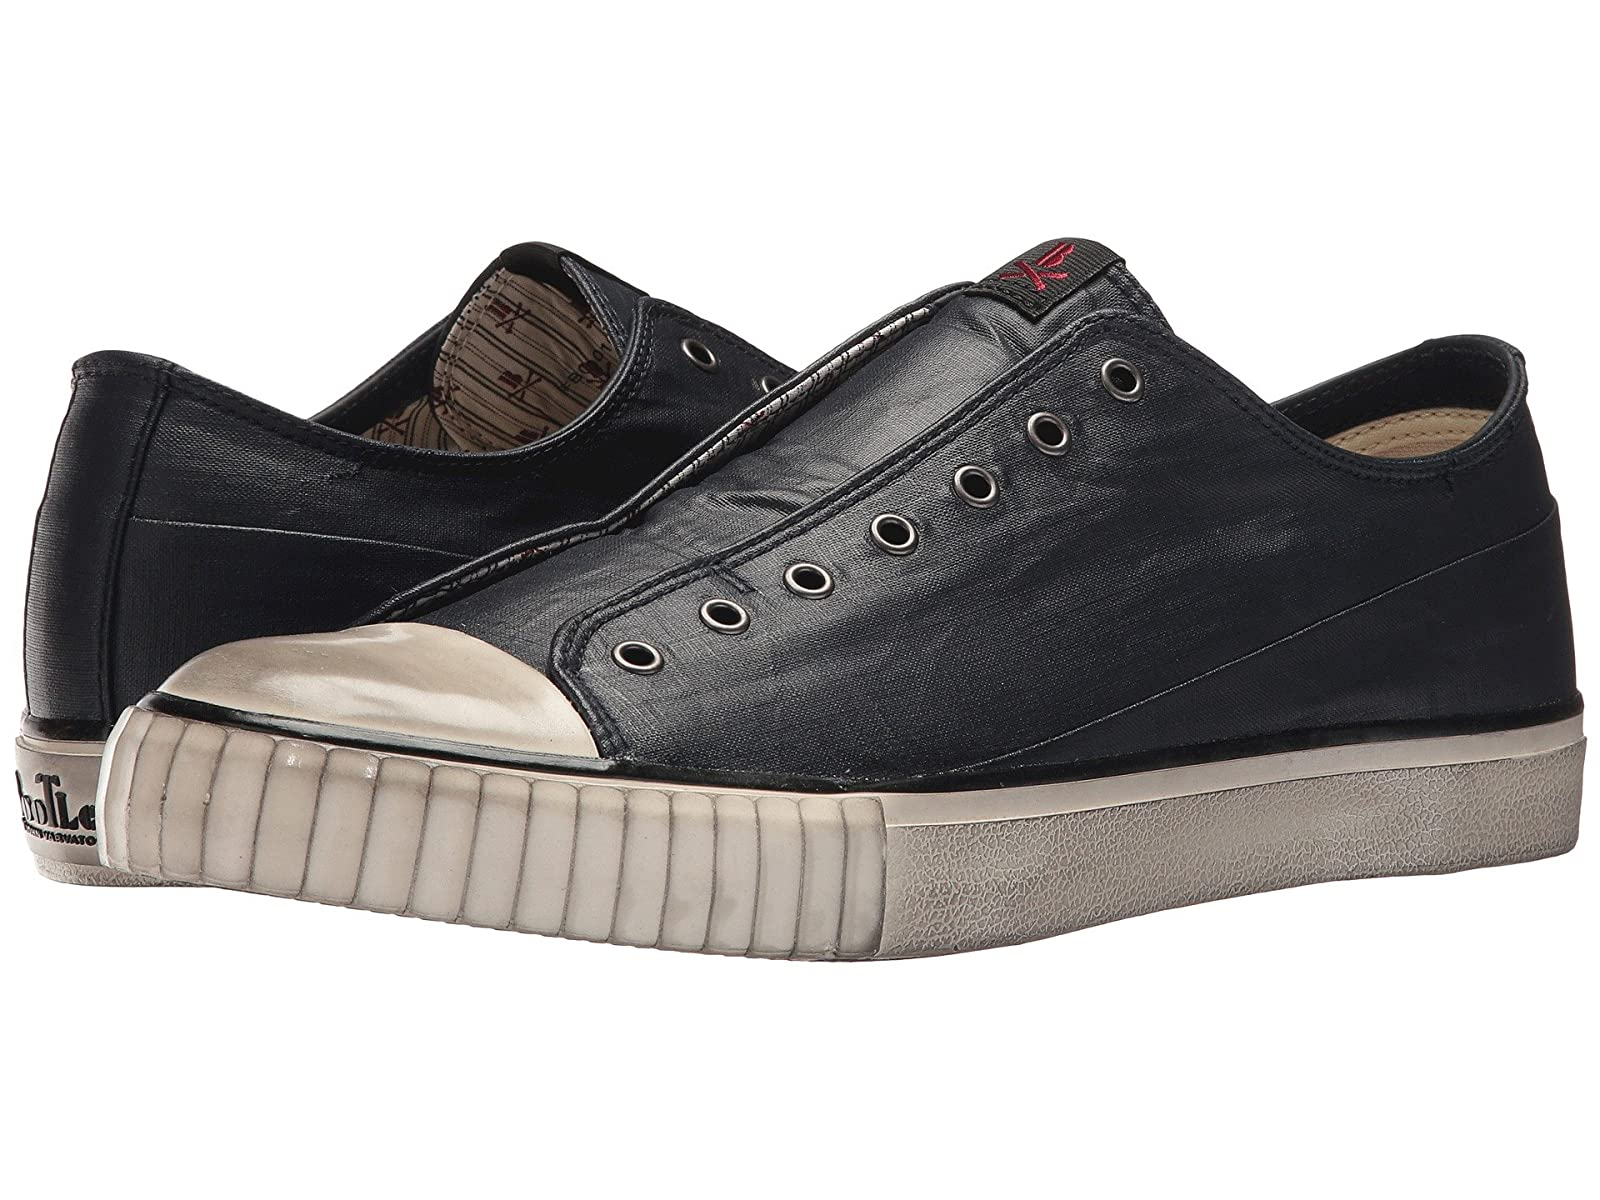 John Varvatos Laceless Low TopAtmospheric grades have affordable shoes